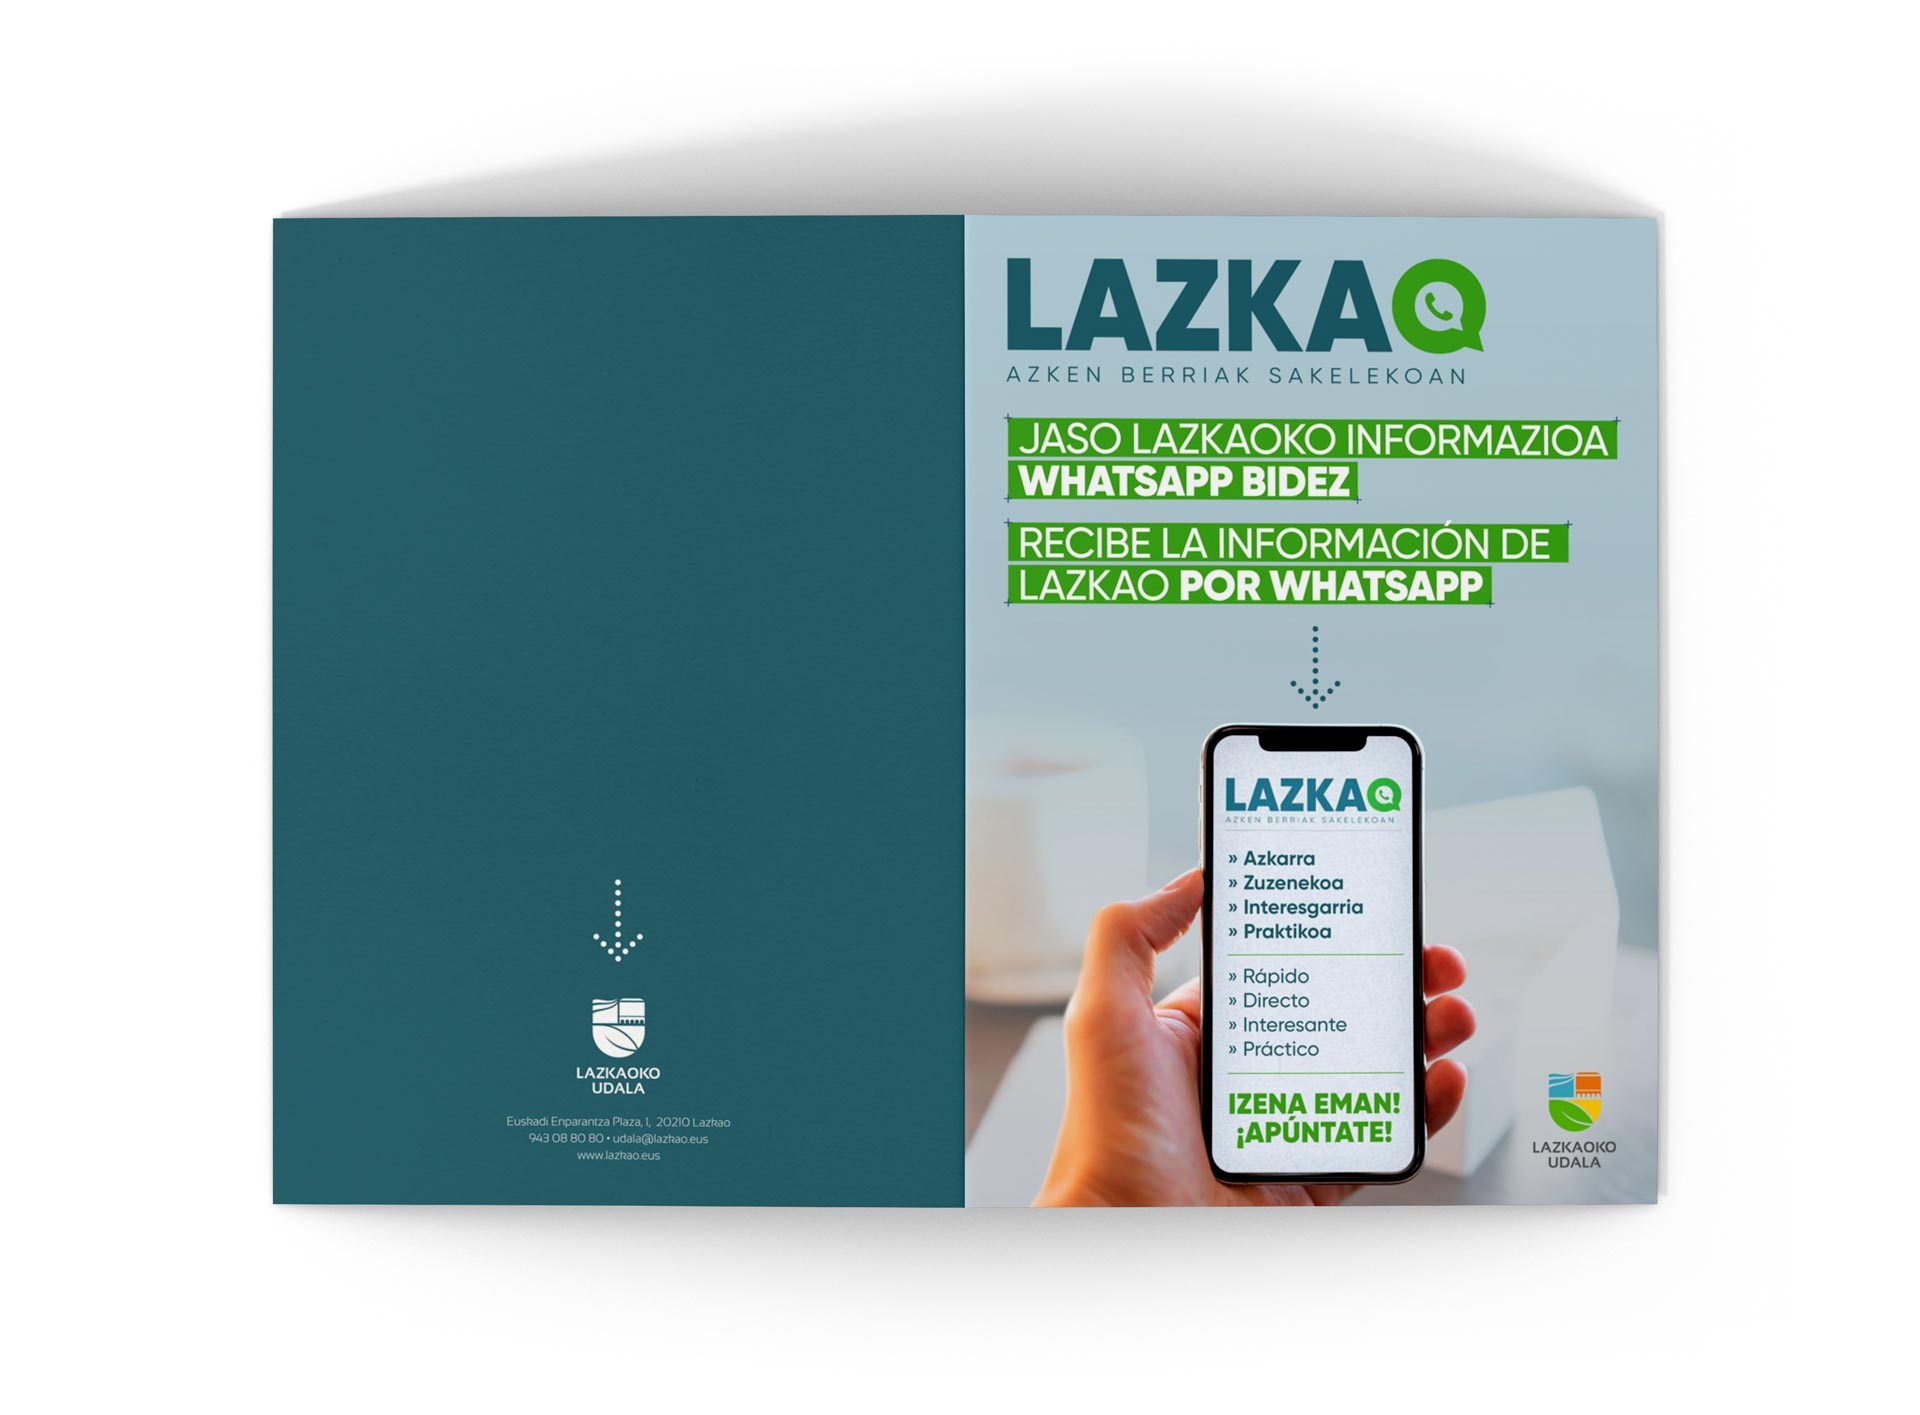 Lazkao whatsapp folleto exterior